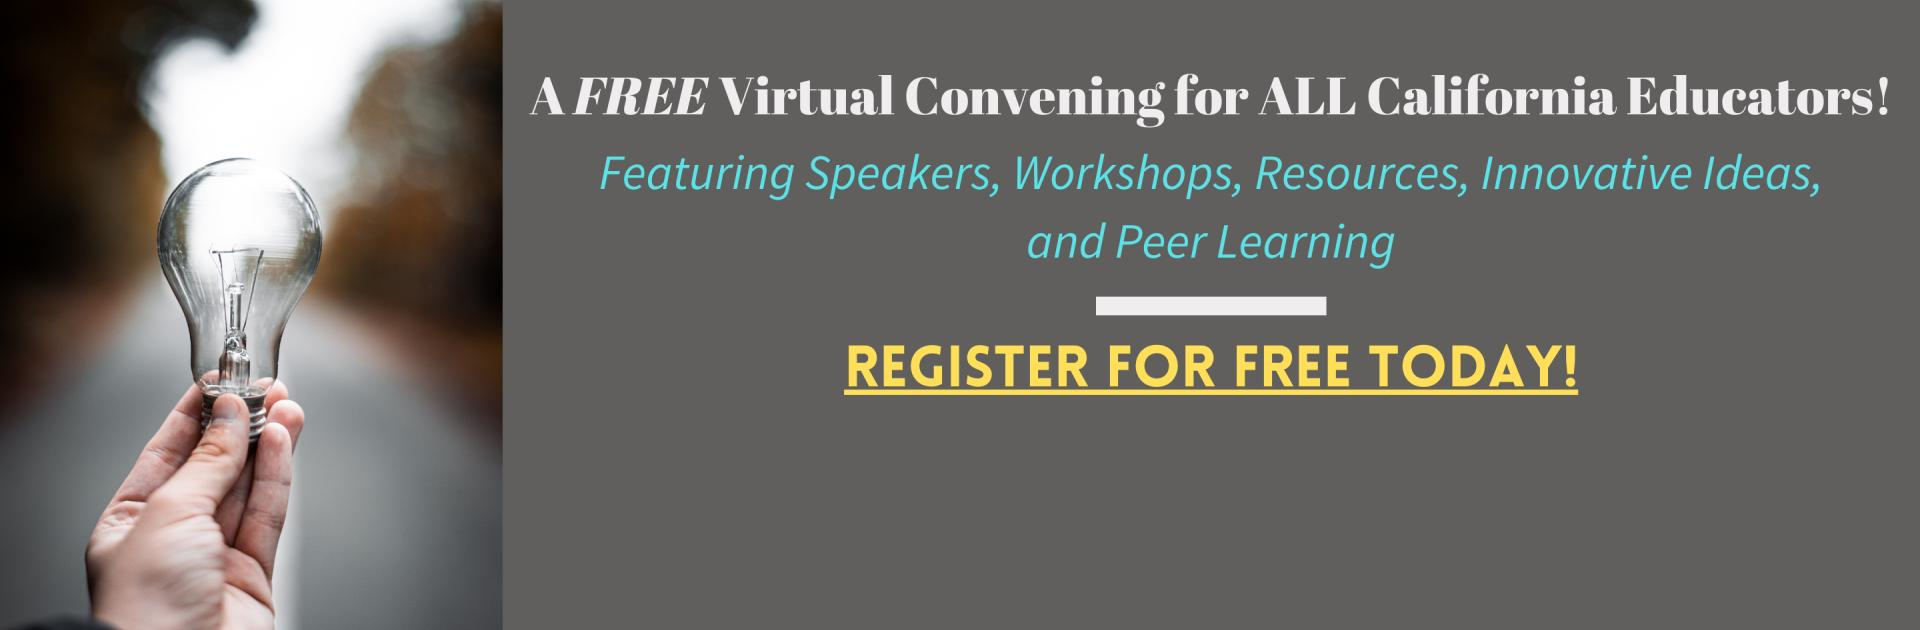 A free virtual convening for ALL California Educators! Featuring, speakers, workshops, resources, innovative ideas, and peer learning.